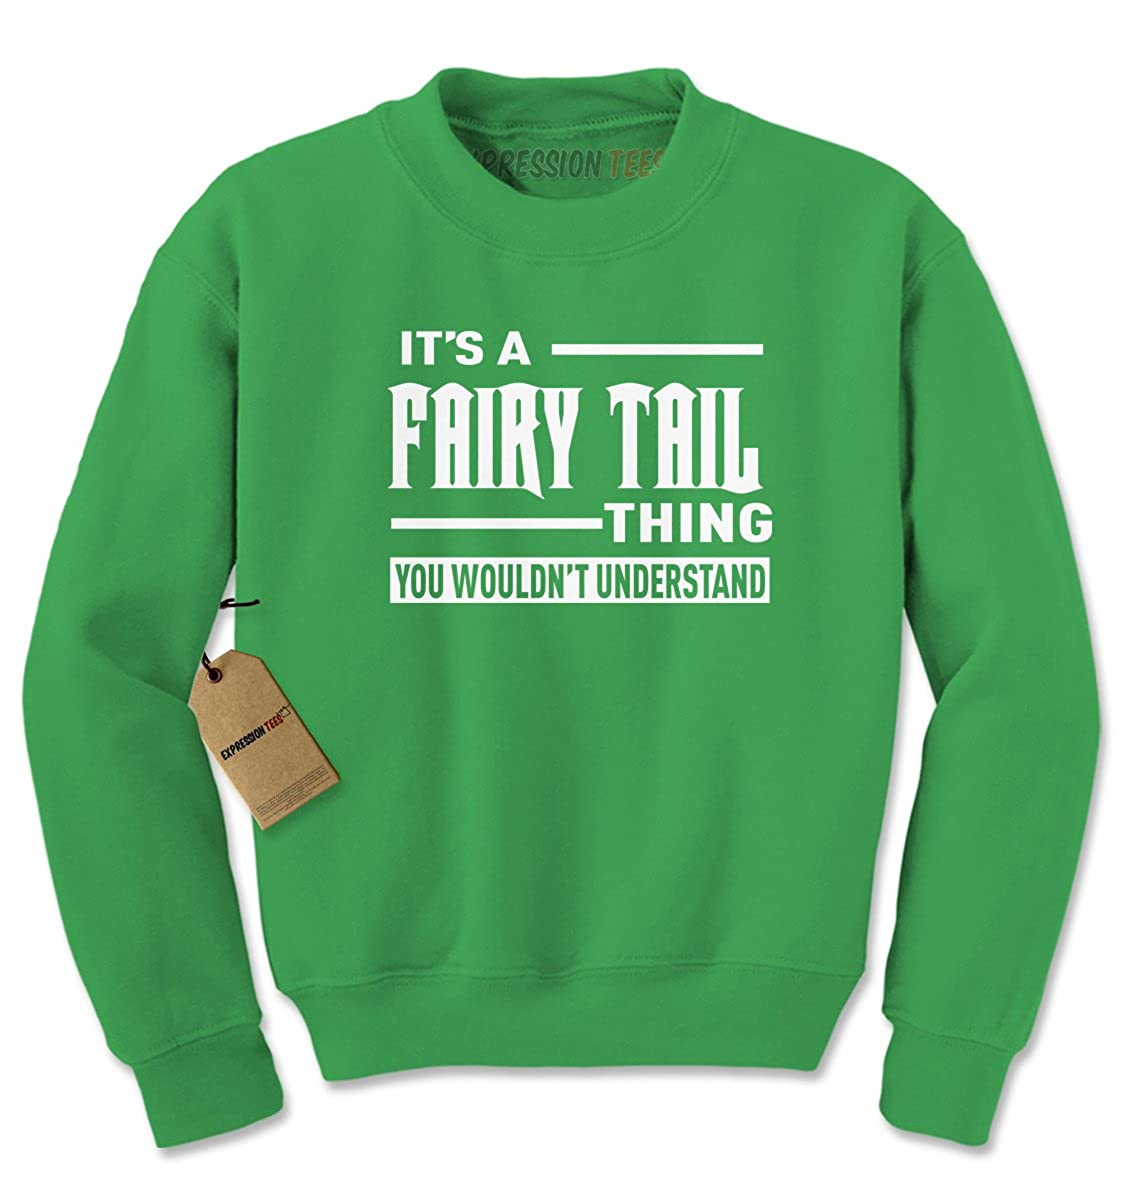 Expression Tees It's A Fairy Tail Thing Crewneck Sweatshirt 1998-C